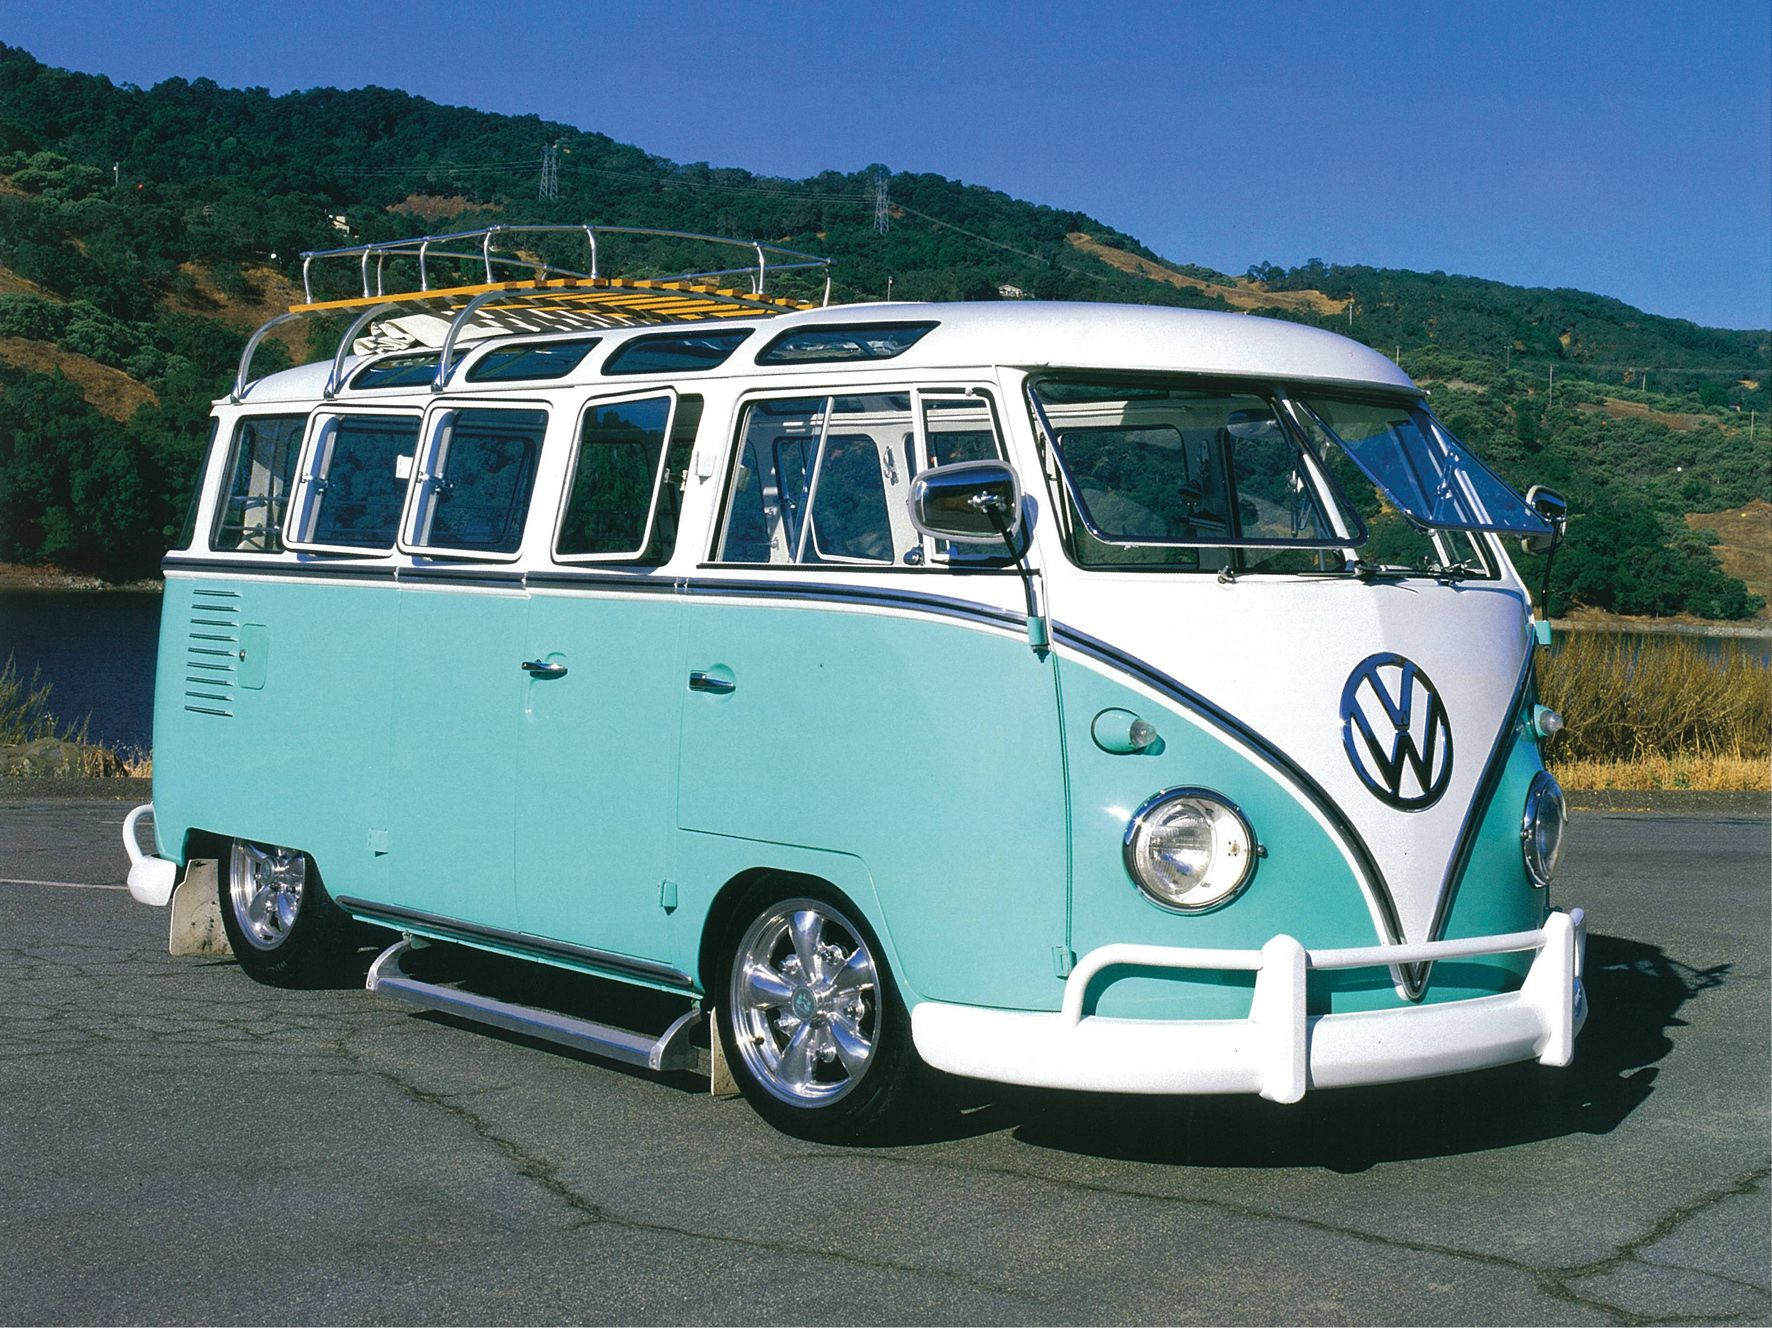 15 best volkswagen t1 images on pinterest | volkswagen, volkswagen